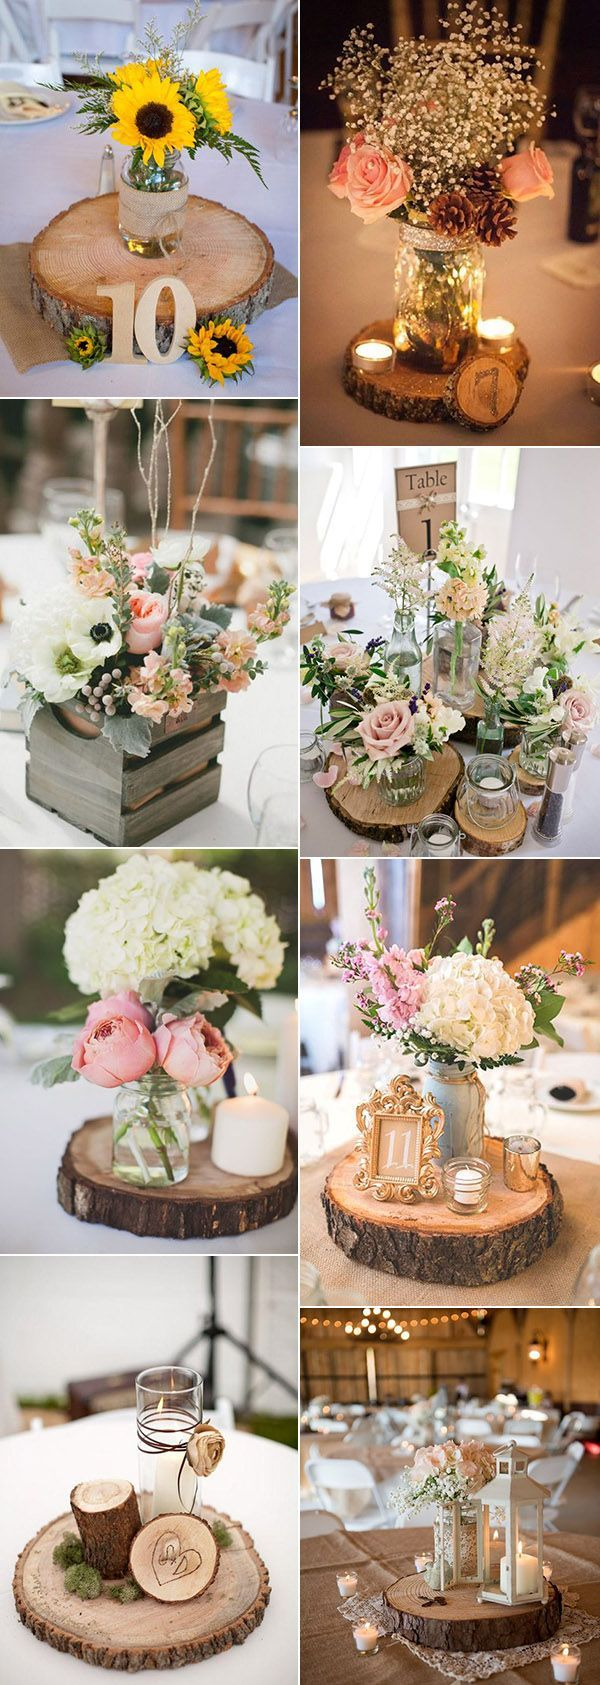 2017 Wedding Trends 36 Perfect Rustic Wood Themed Ideas Table Decorationswedding